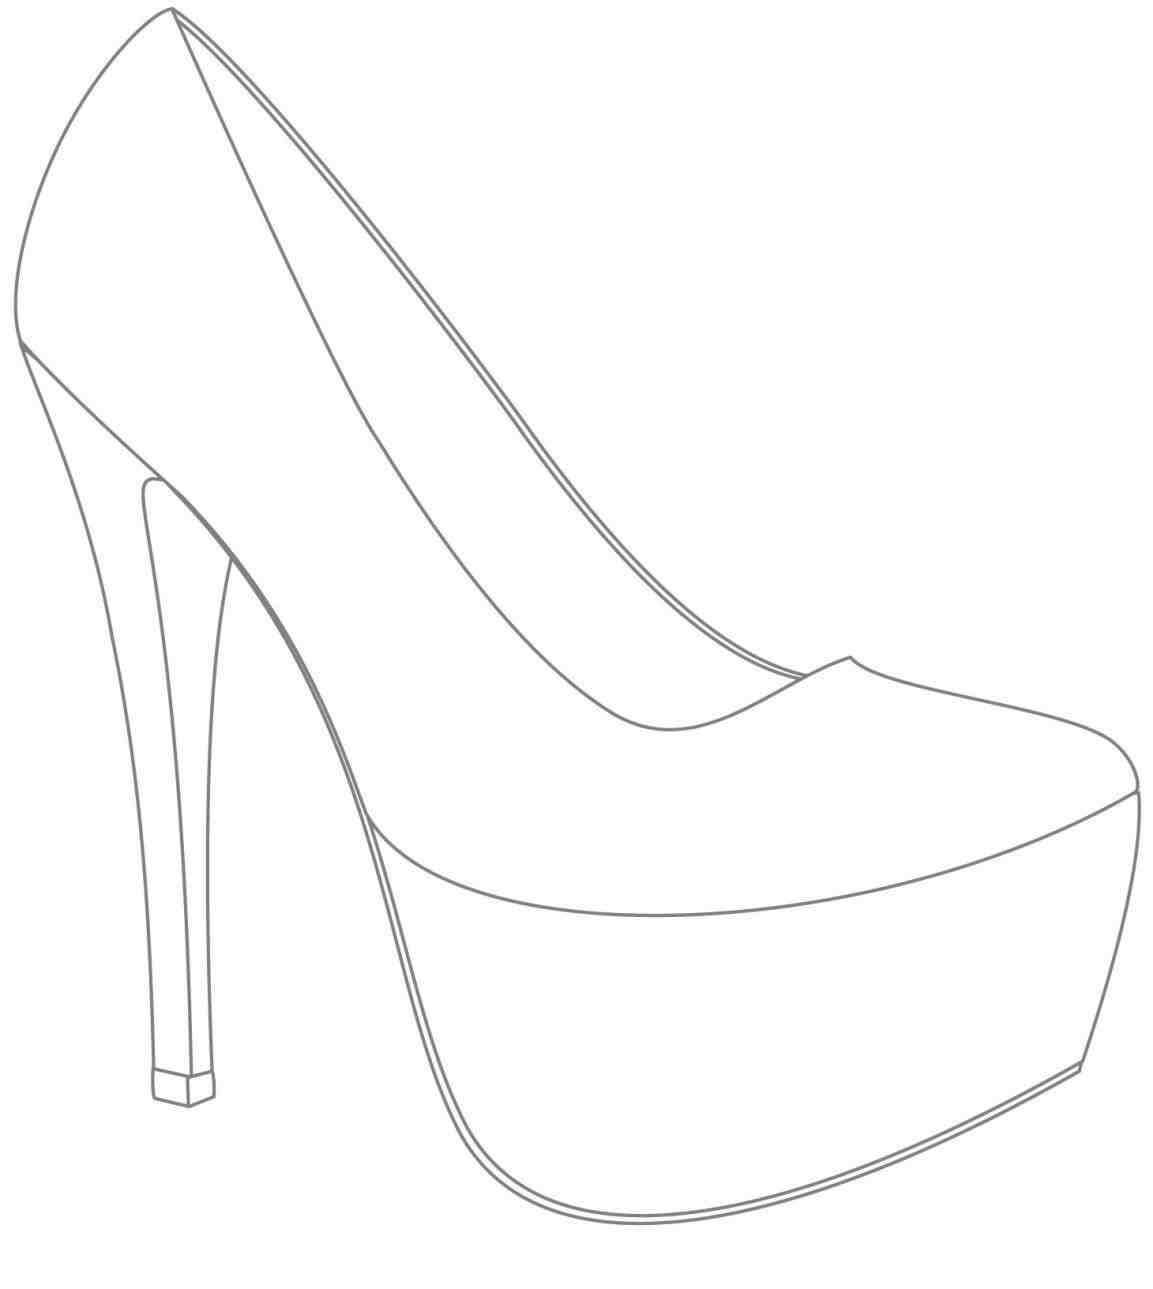 High Heel Drawing Template At Paintingvalley | Explore throughout High Heel Shoe Template For Card